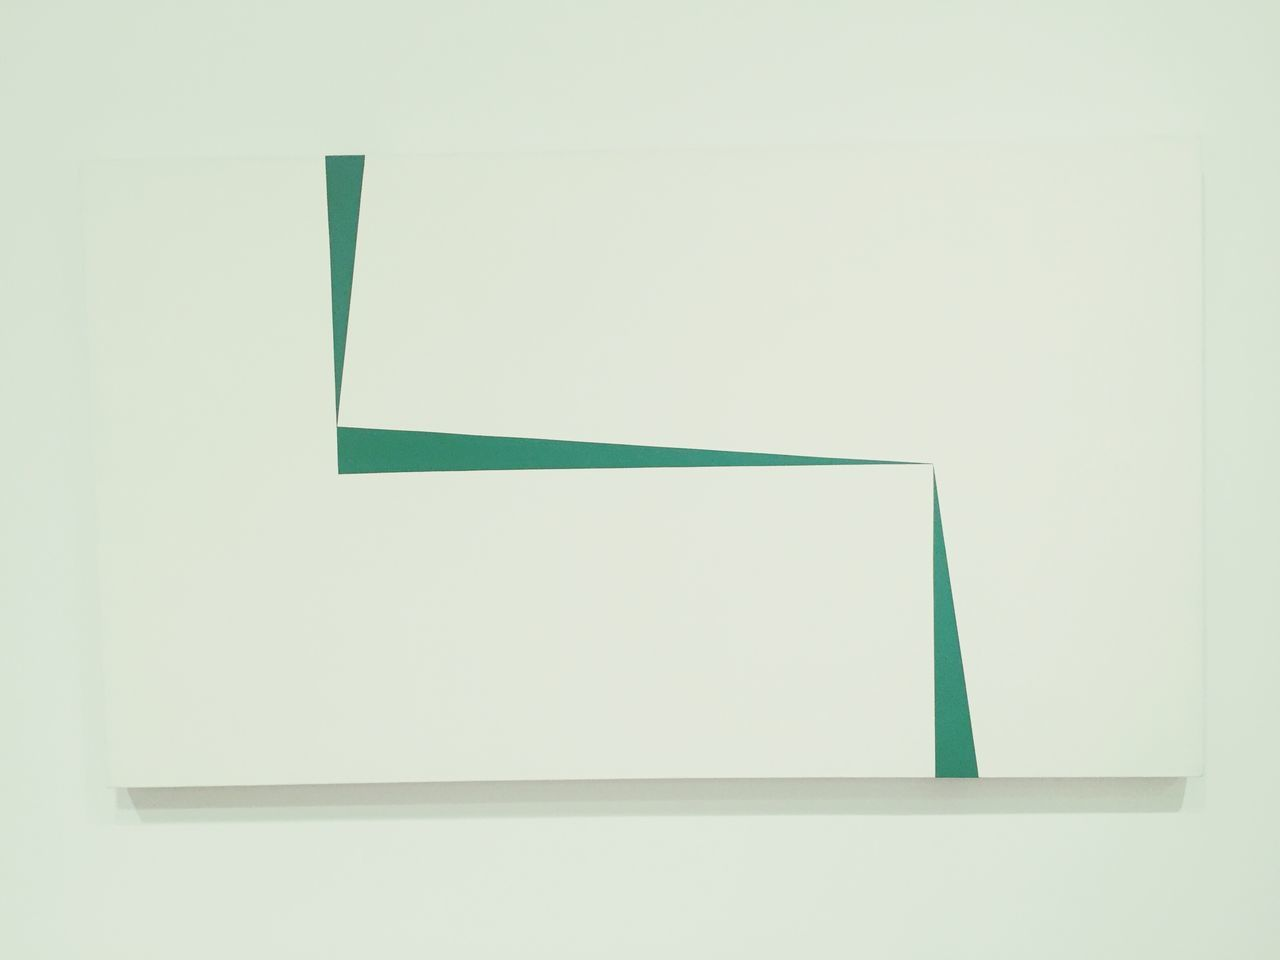 Triangular like bed Llines Geometric Color Green White Background Cuban Geometric Abstraction Lady Green Color Abstract Art Cuban Artist No People Geometric Shape Whitney Museum, NYC Lineart Diagonal Lines